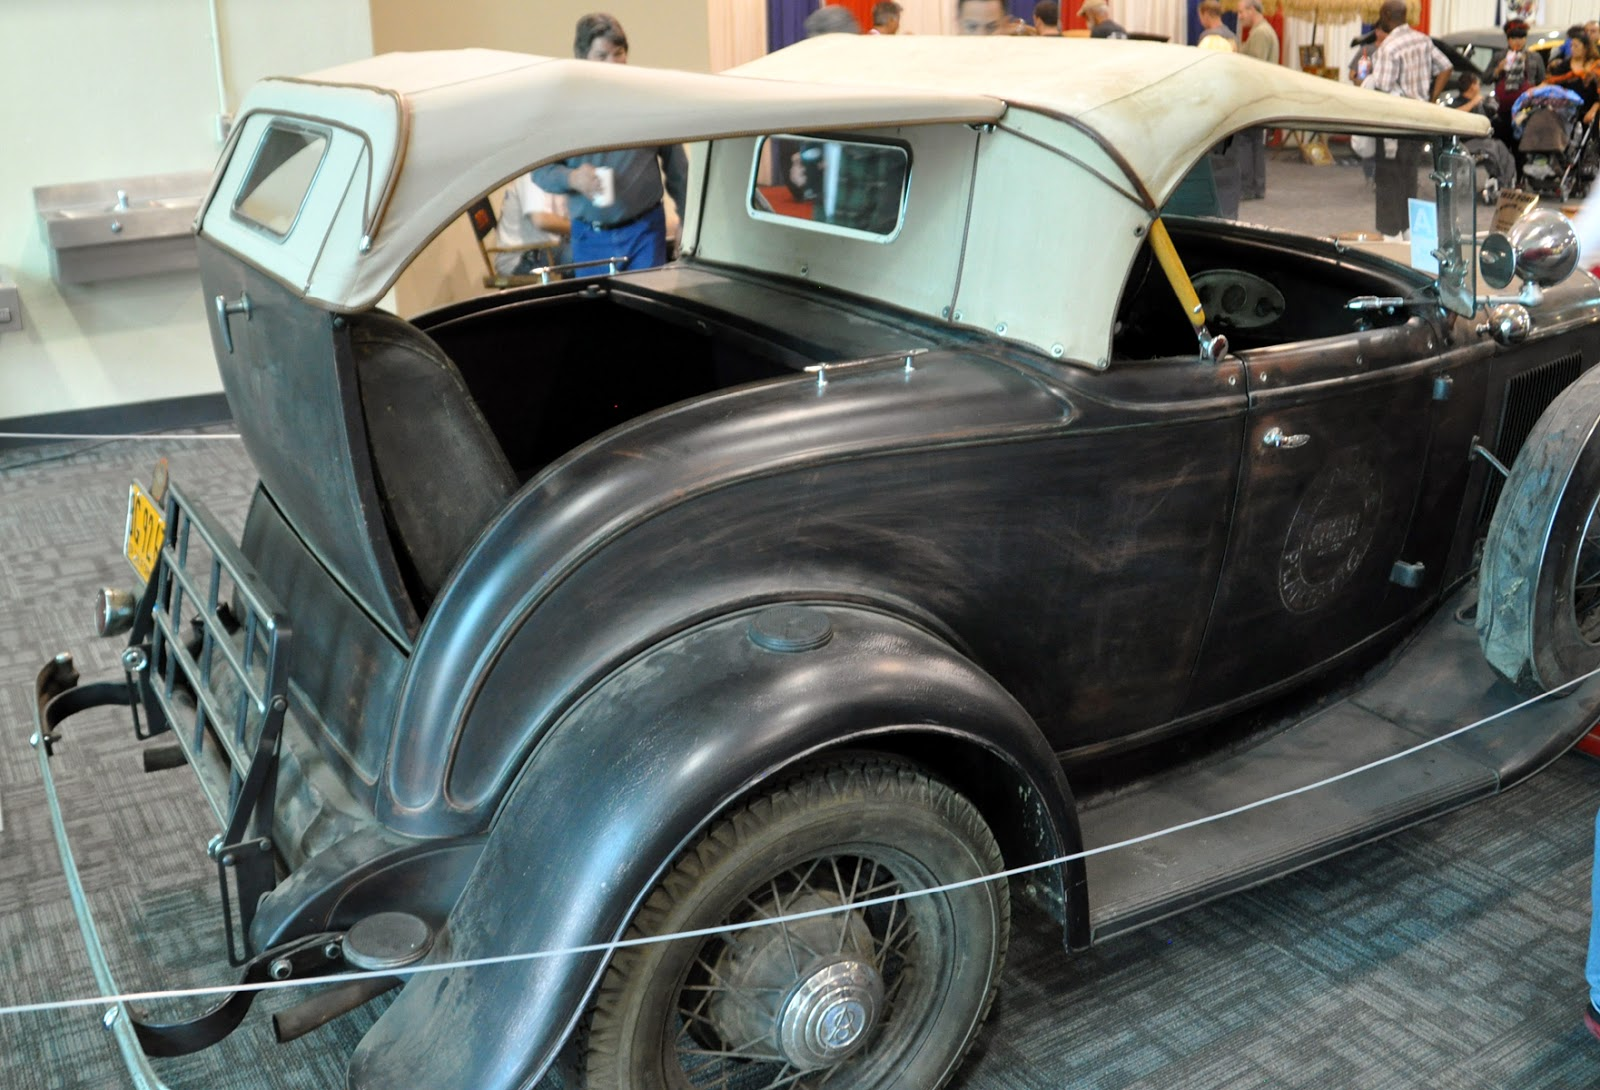 The Tux A Way Rumble Seat Top Was One Year Only Feature 1932 Car Belongs To Dave Graham